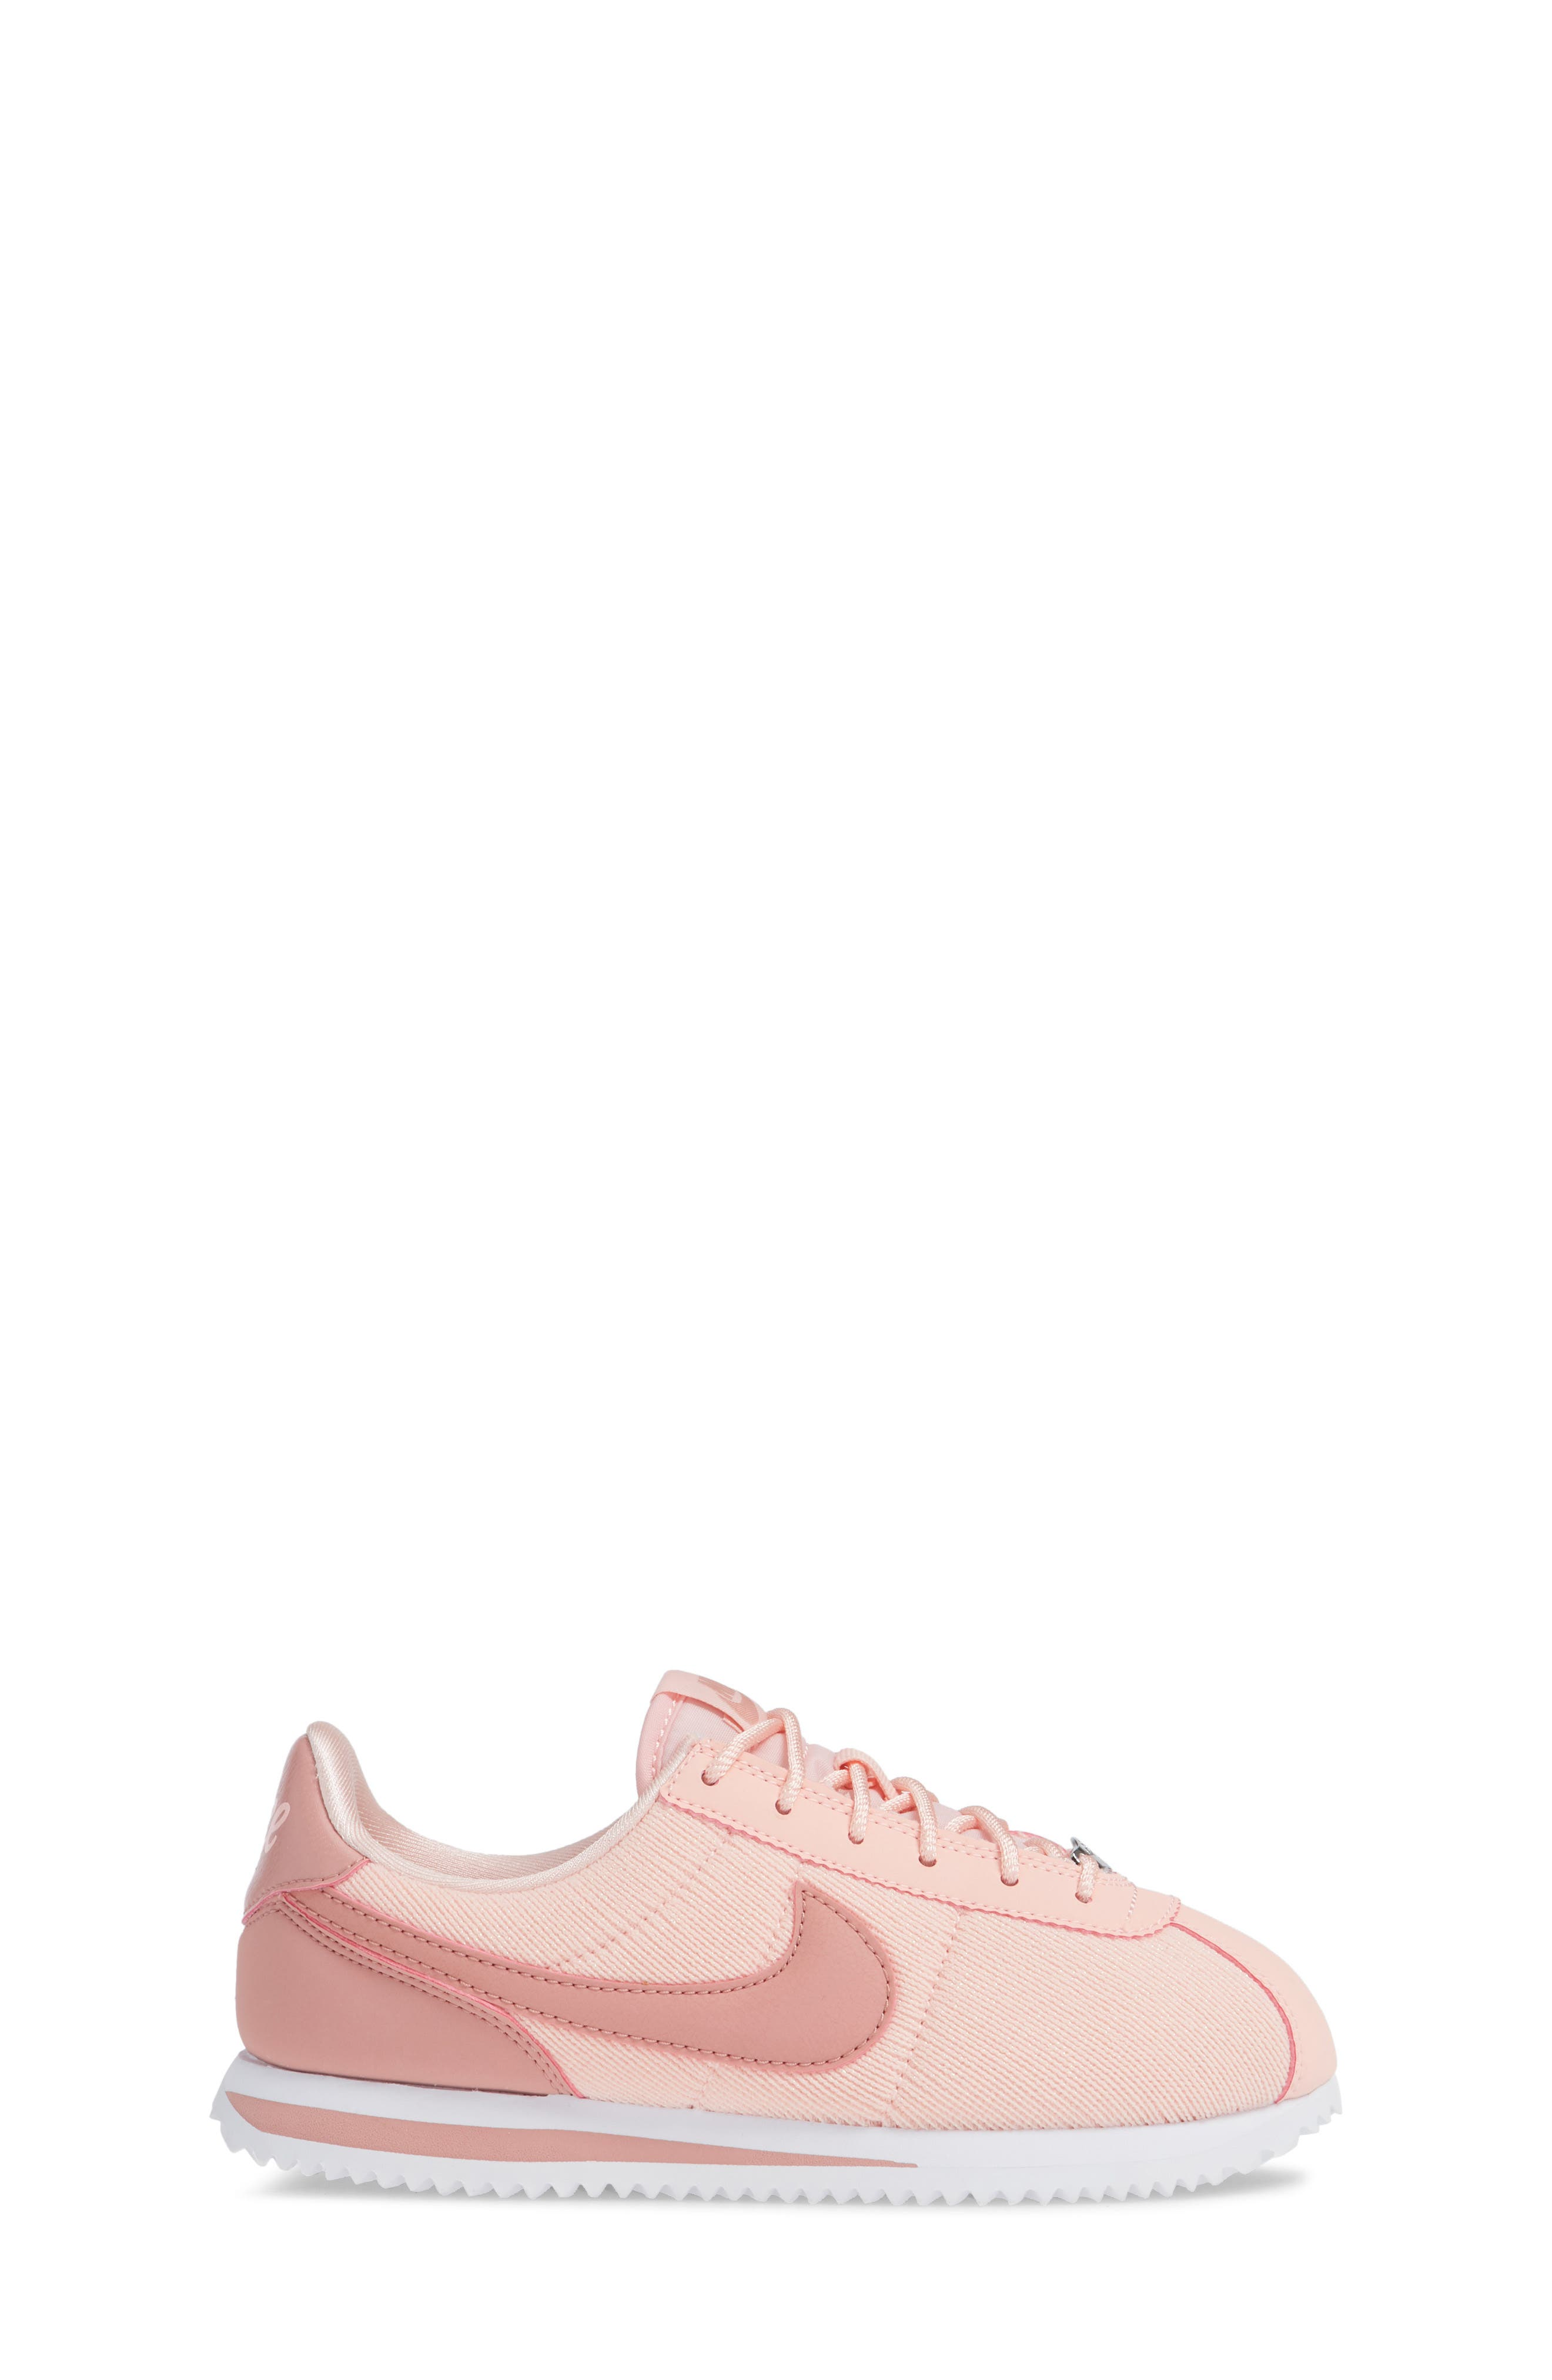 Cortez Basic TXT SE Sneaker,                             Alternate thumbnail 3, color,                             STORM PINK/ RUST PINK/ WHITE